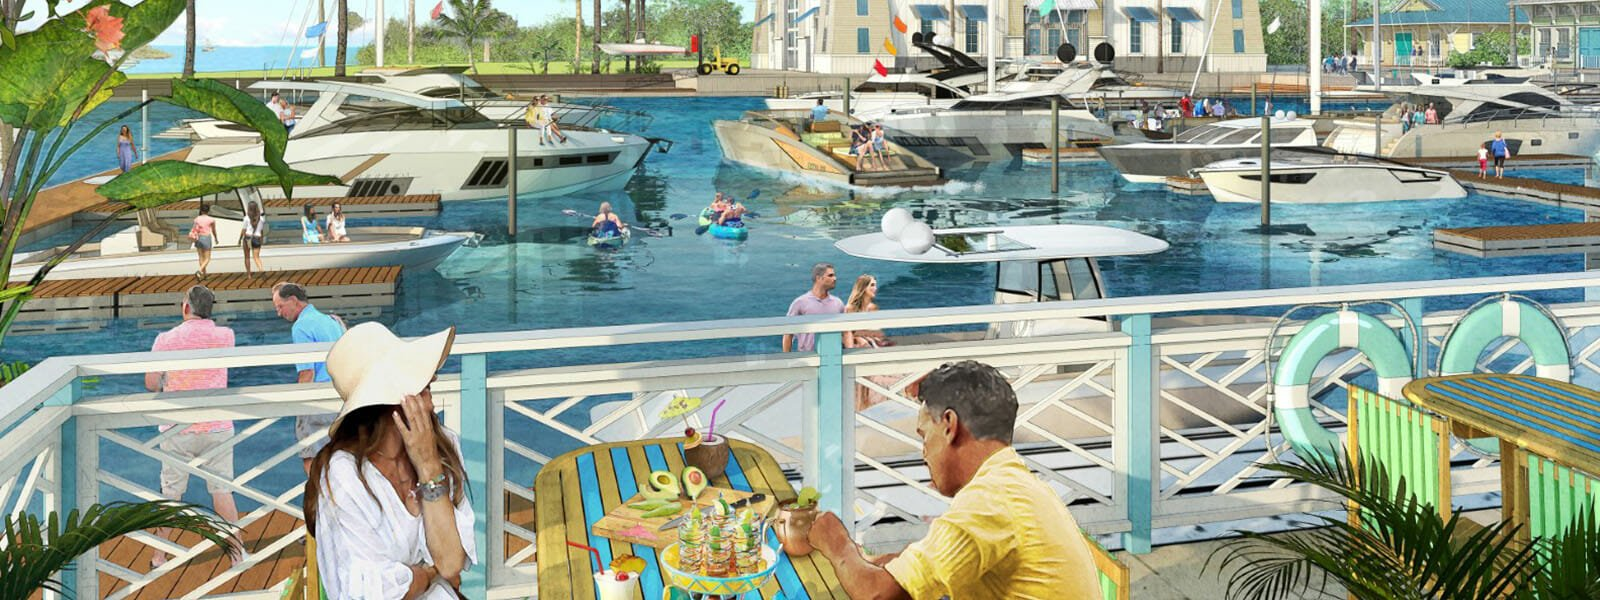 One Particular Harbour | Margaritaville Inspired Waterfront Community | FL